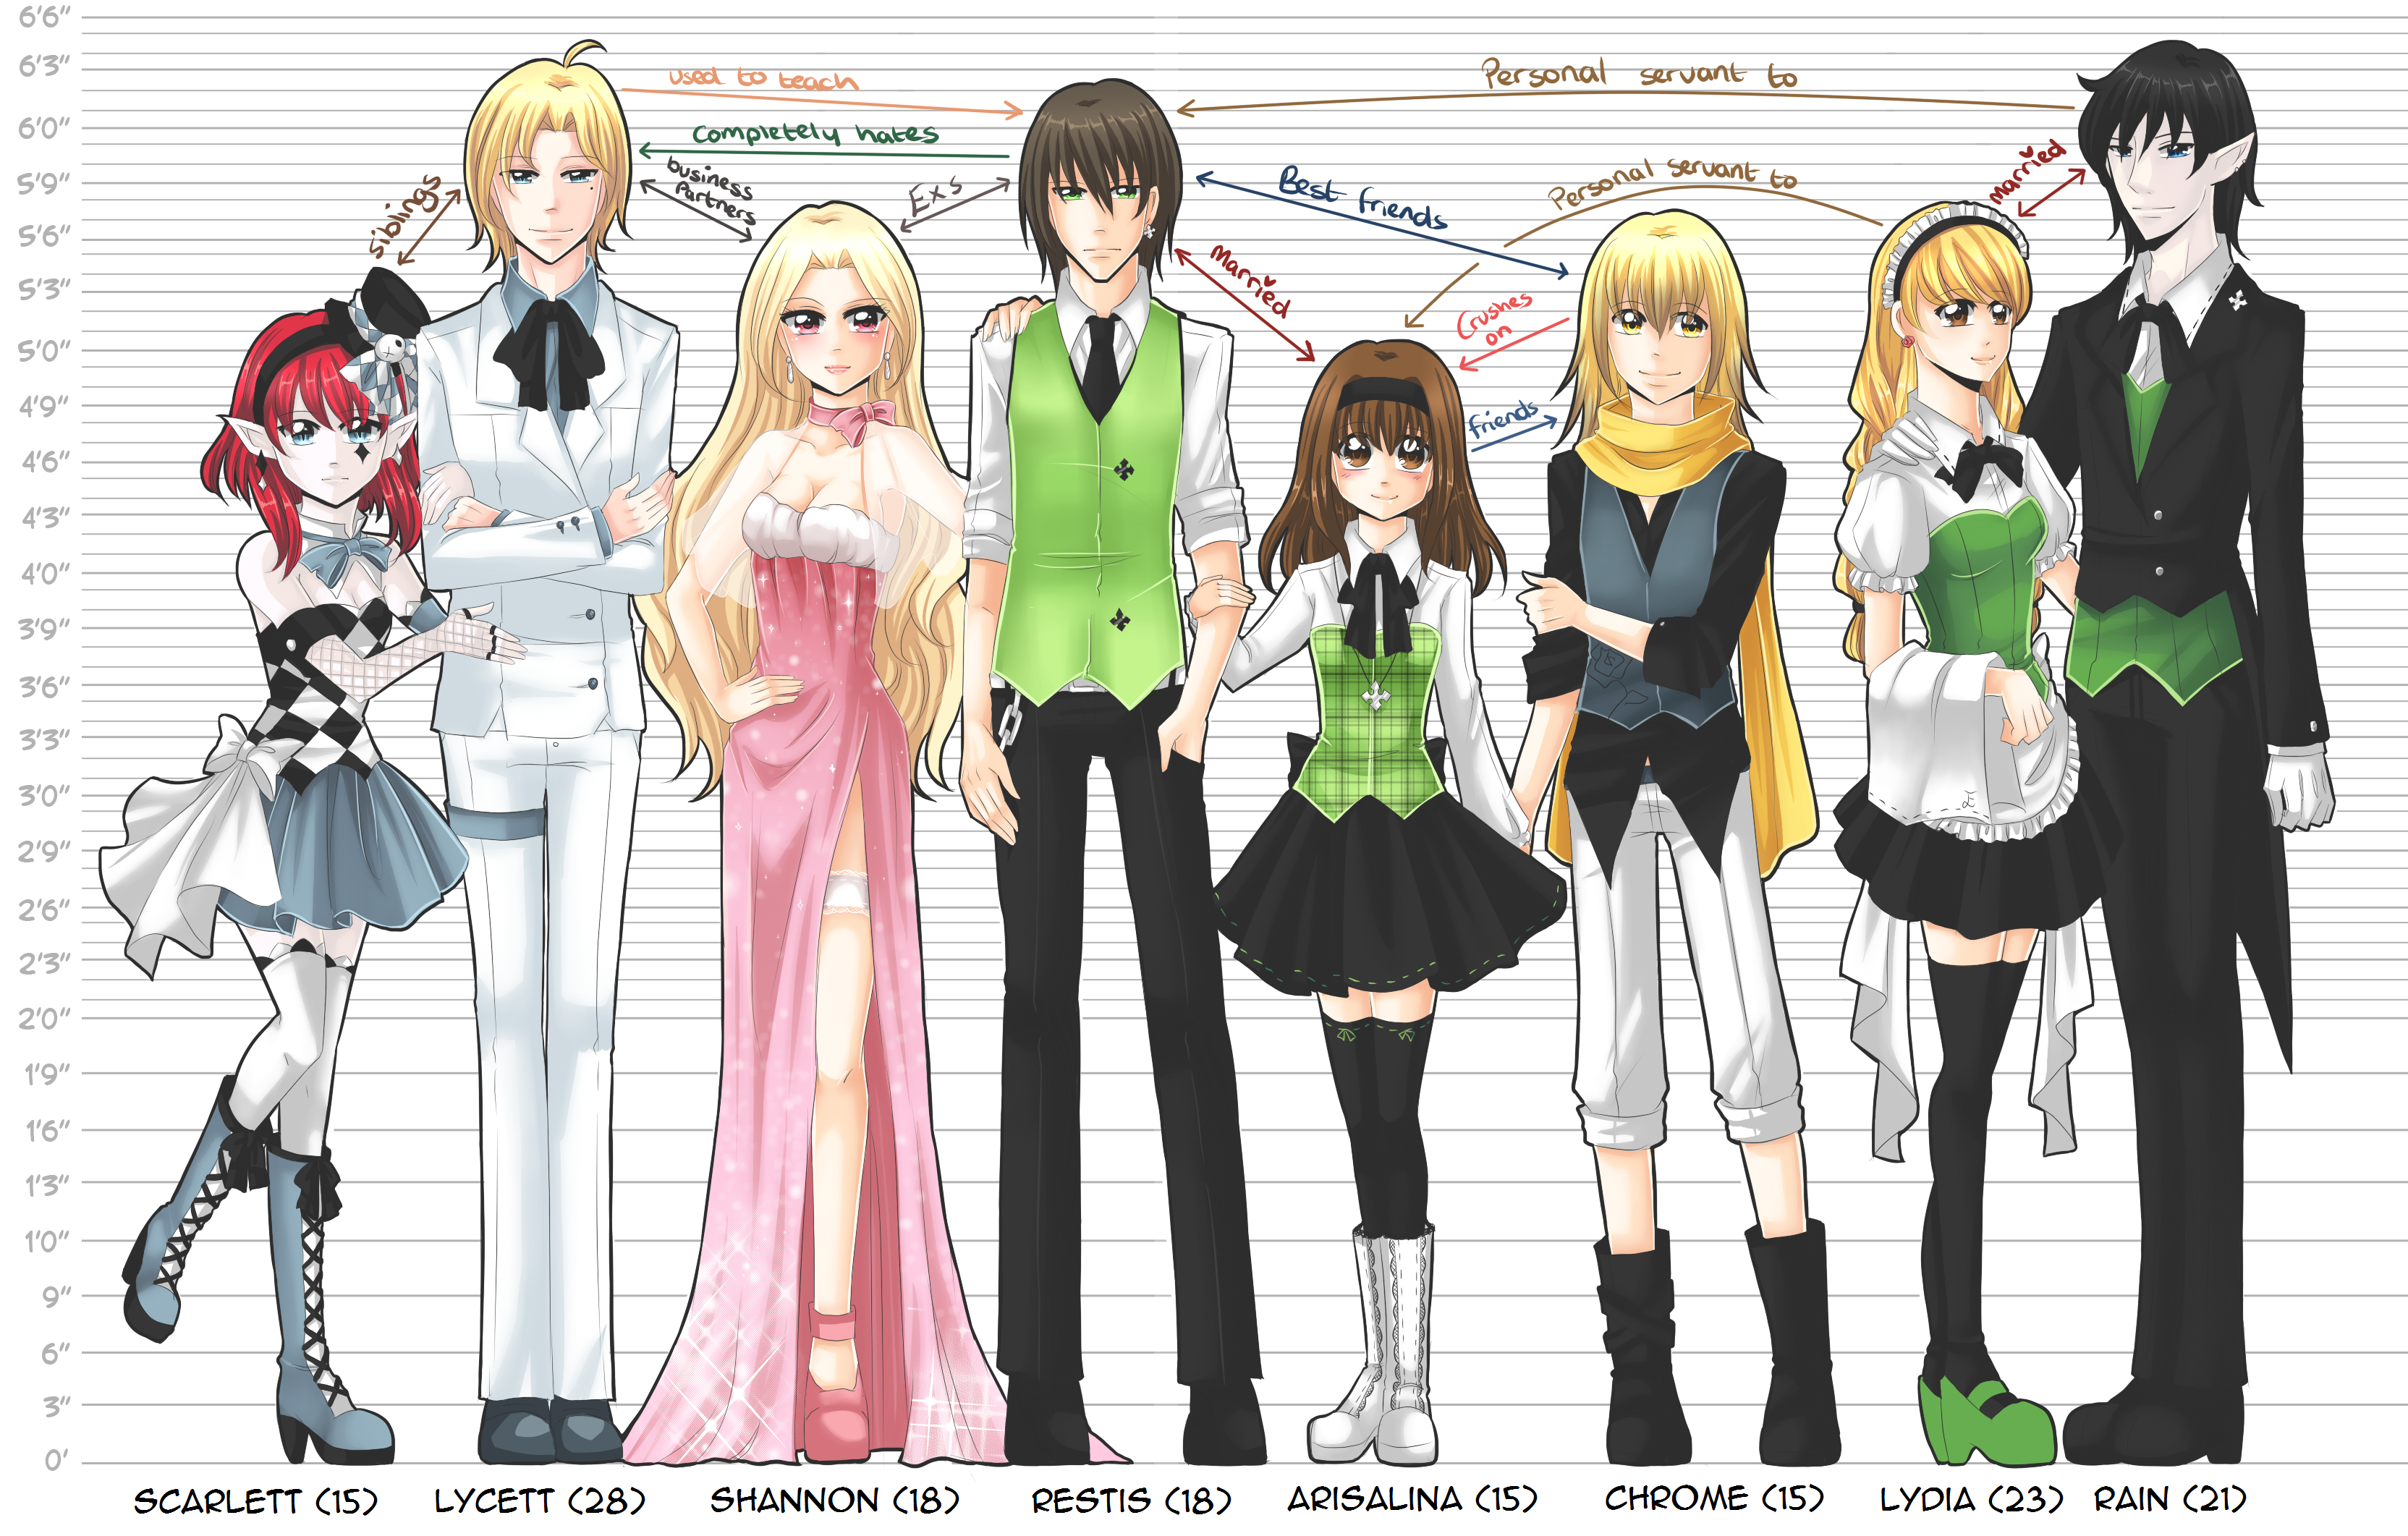 166 Cm Anime Characters : Tbe character height and relationships by chikukko on